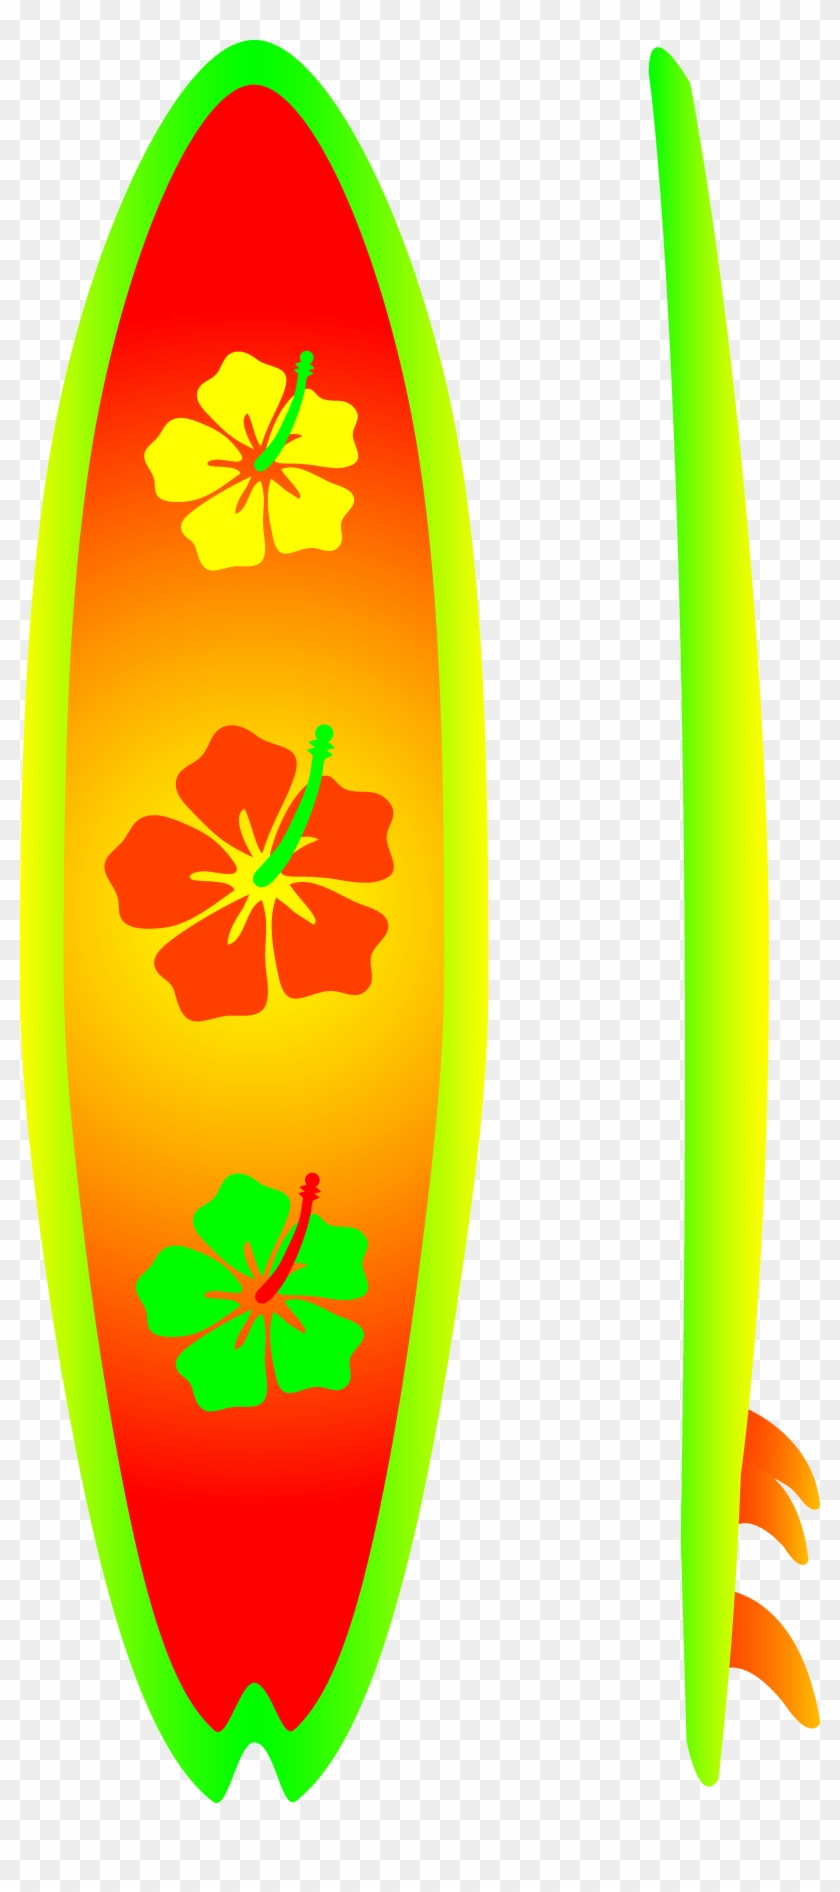 Neon Surfboard With Hibiscus Design Free Clip Art - Surf Board Clip Art #194346